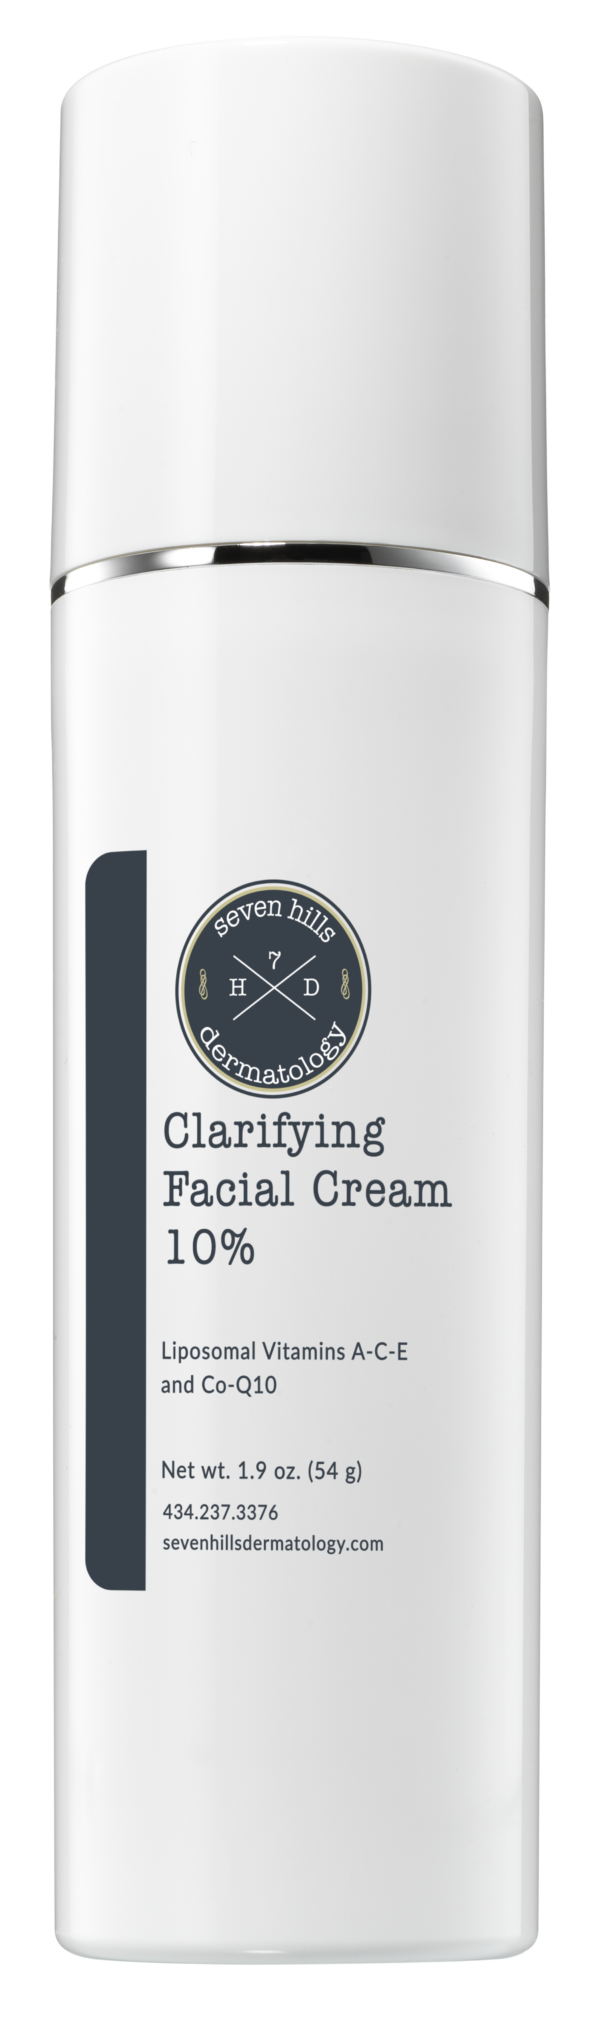 A white container that reads: Clarifying Facial Cream 10%